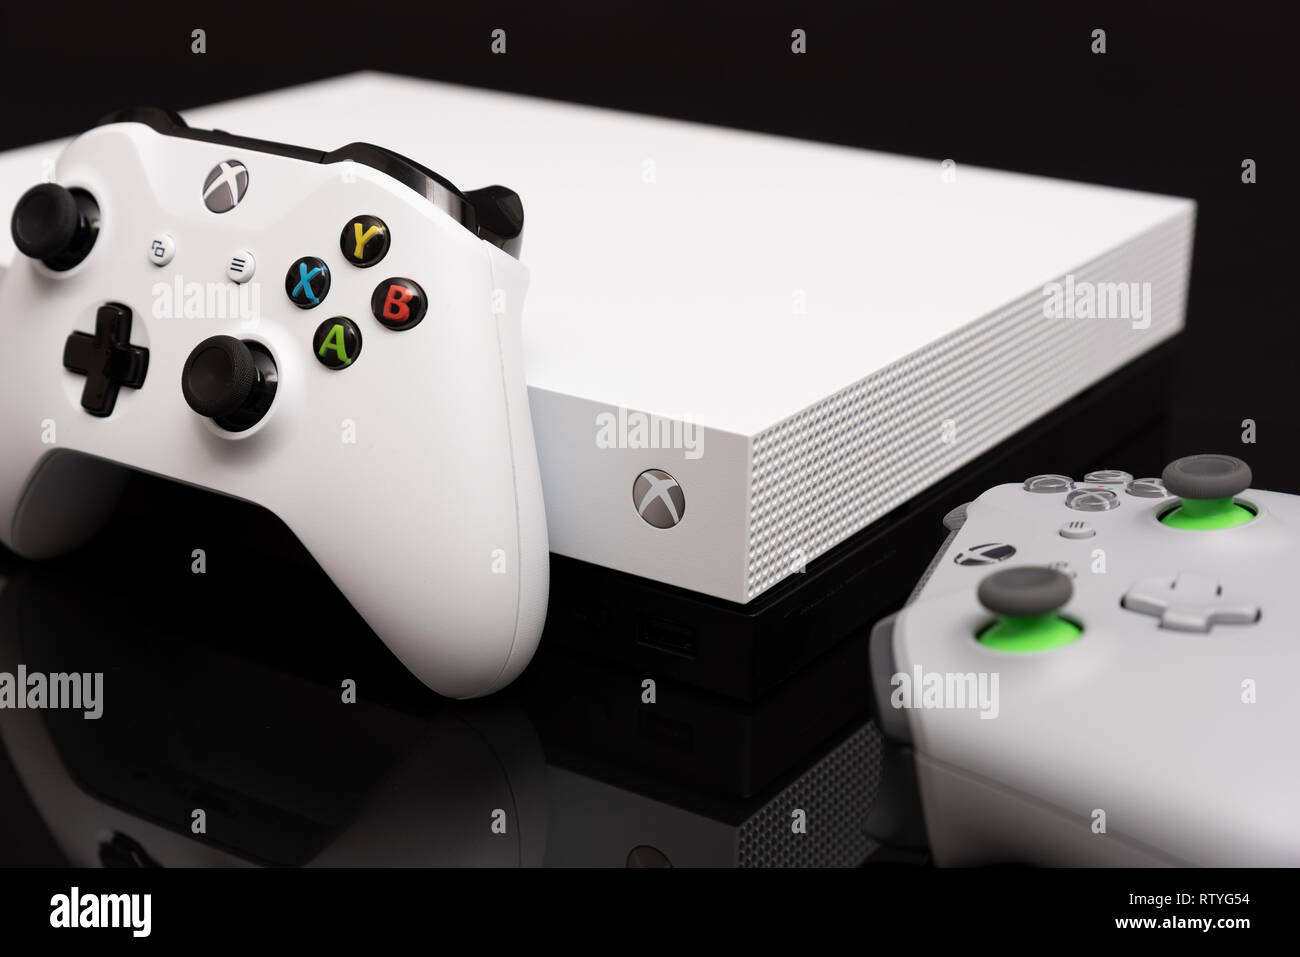 Wroclaw, Poland - JAN 08, 2019: Xbox One X is most powerful generation video gaming console - Stock Image